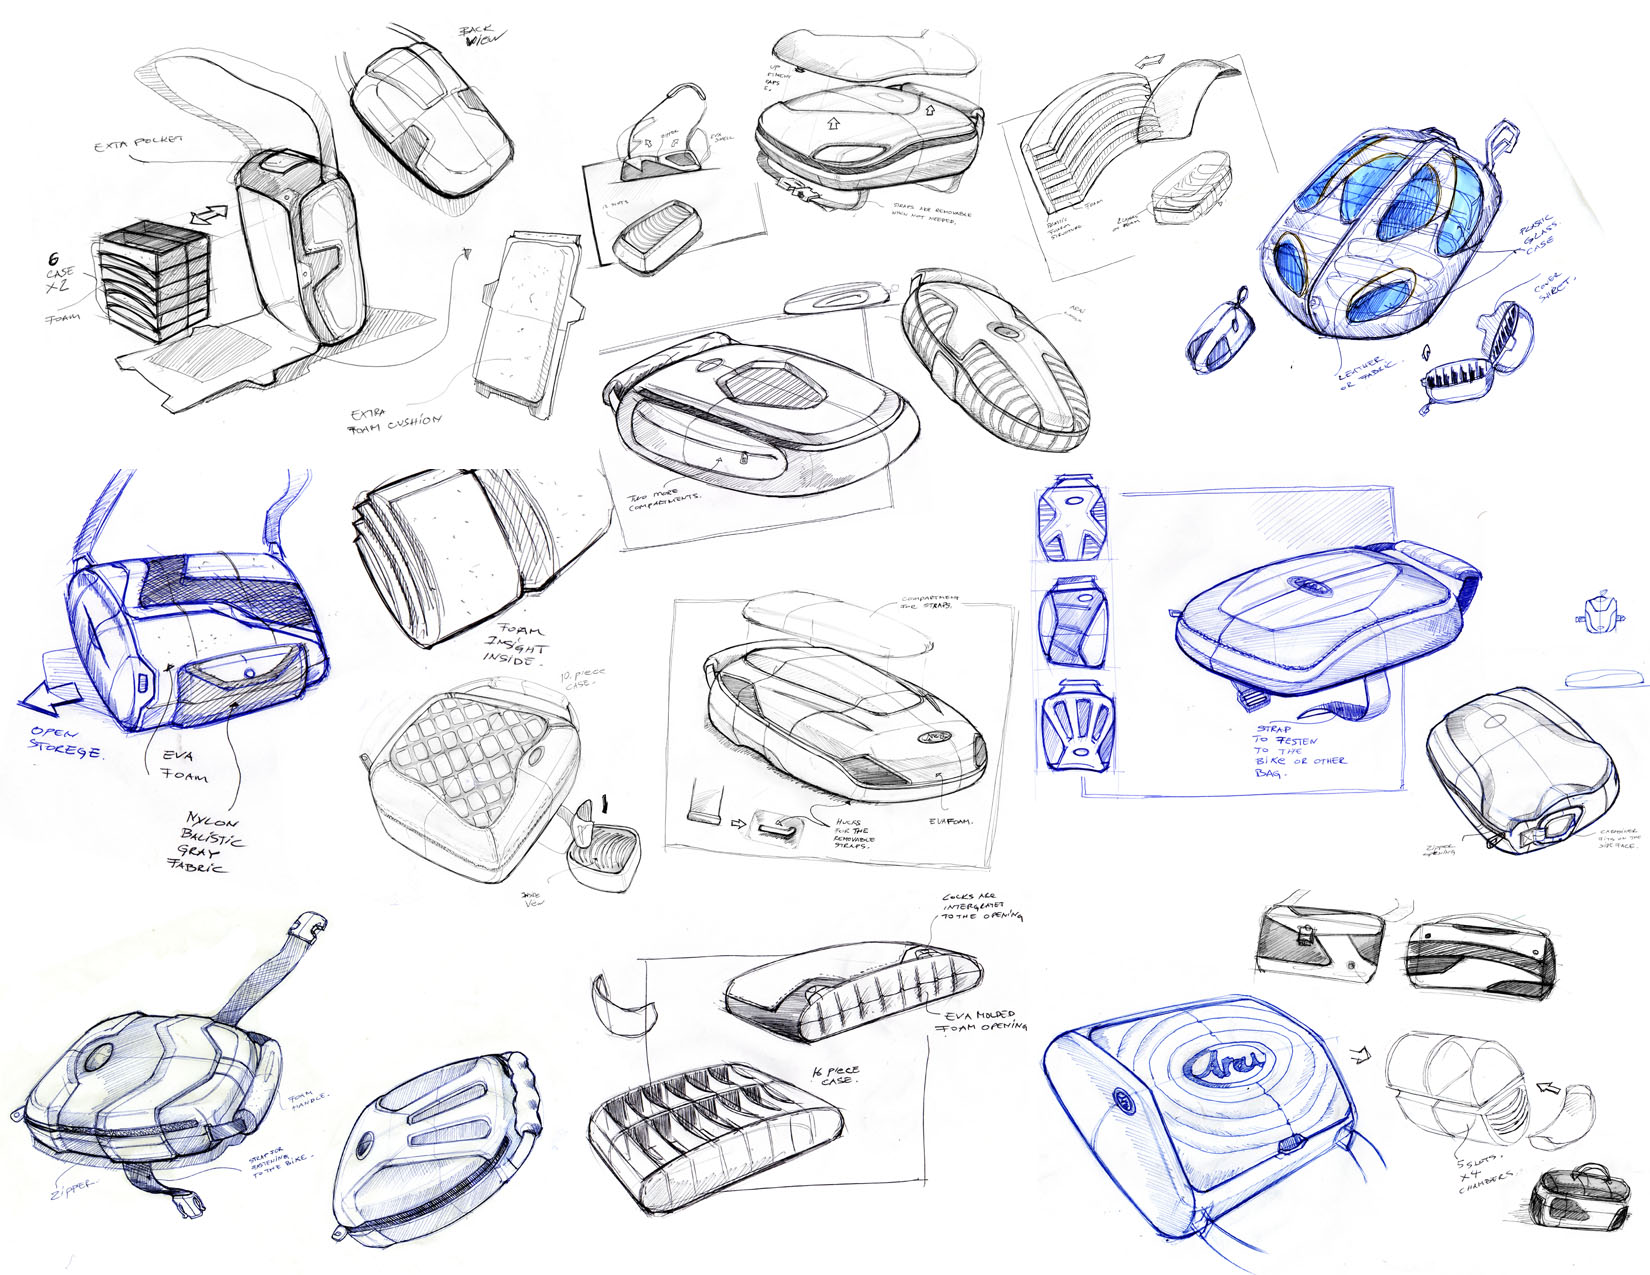 Cardboard Helicopter Product Design Cleveland Ohio Product Development Concept Sketches4.jpg